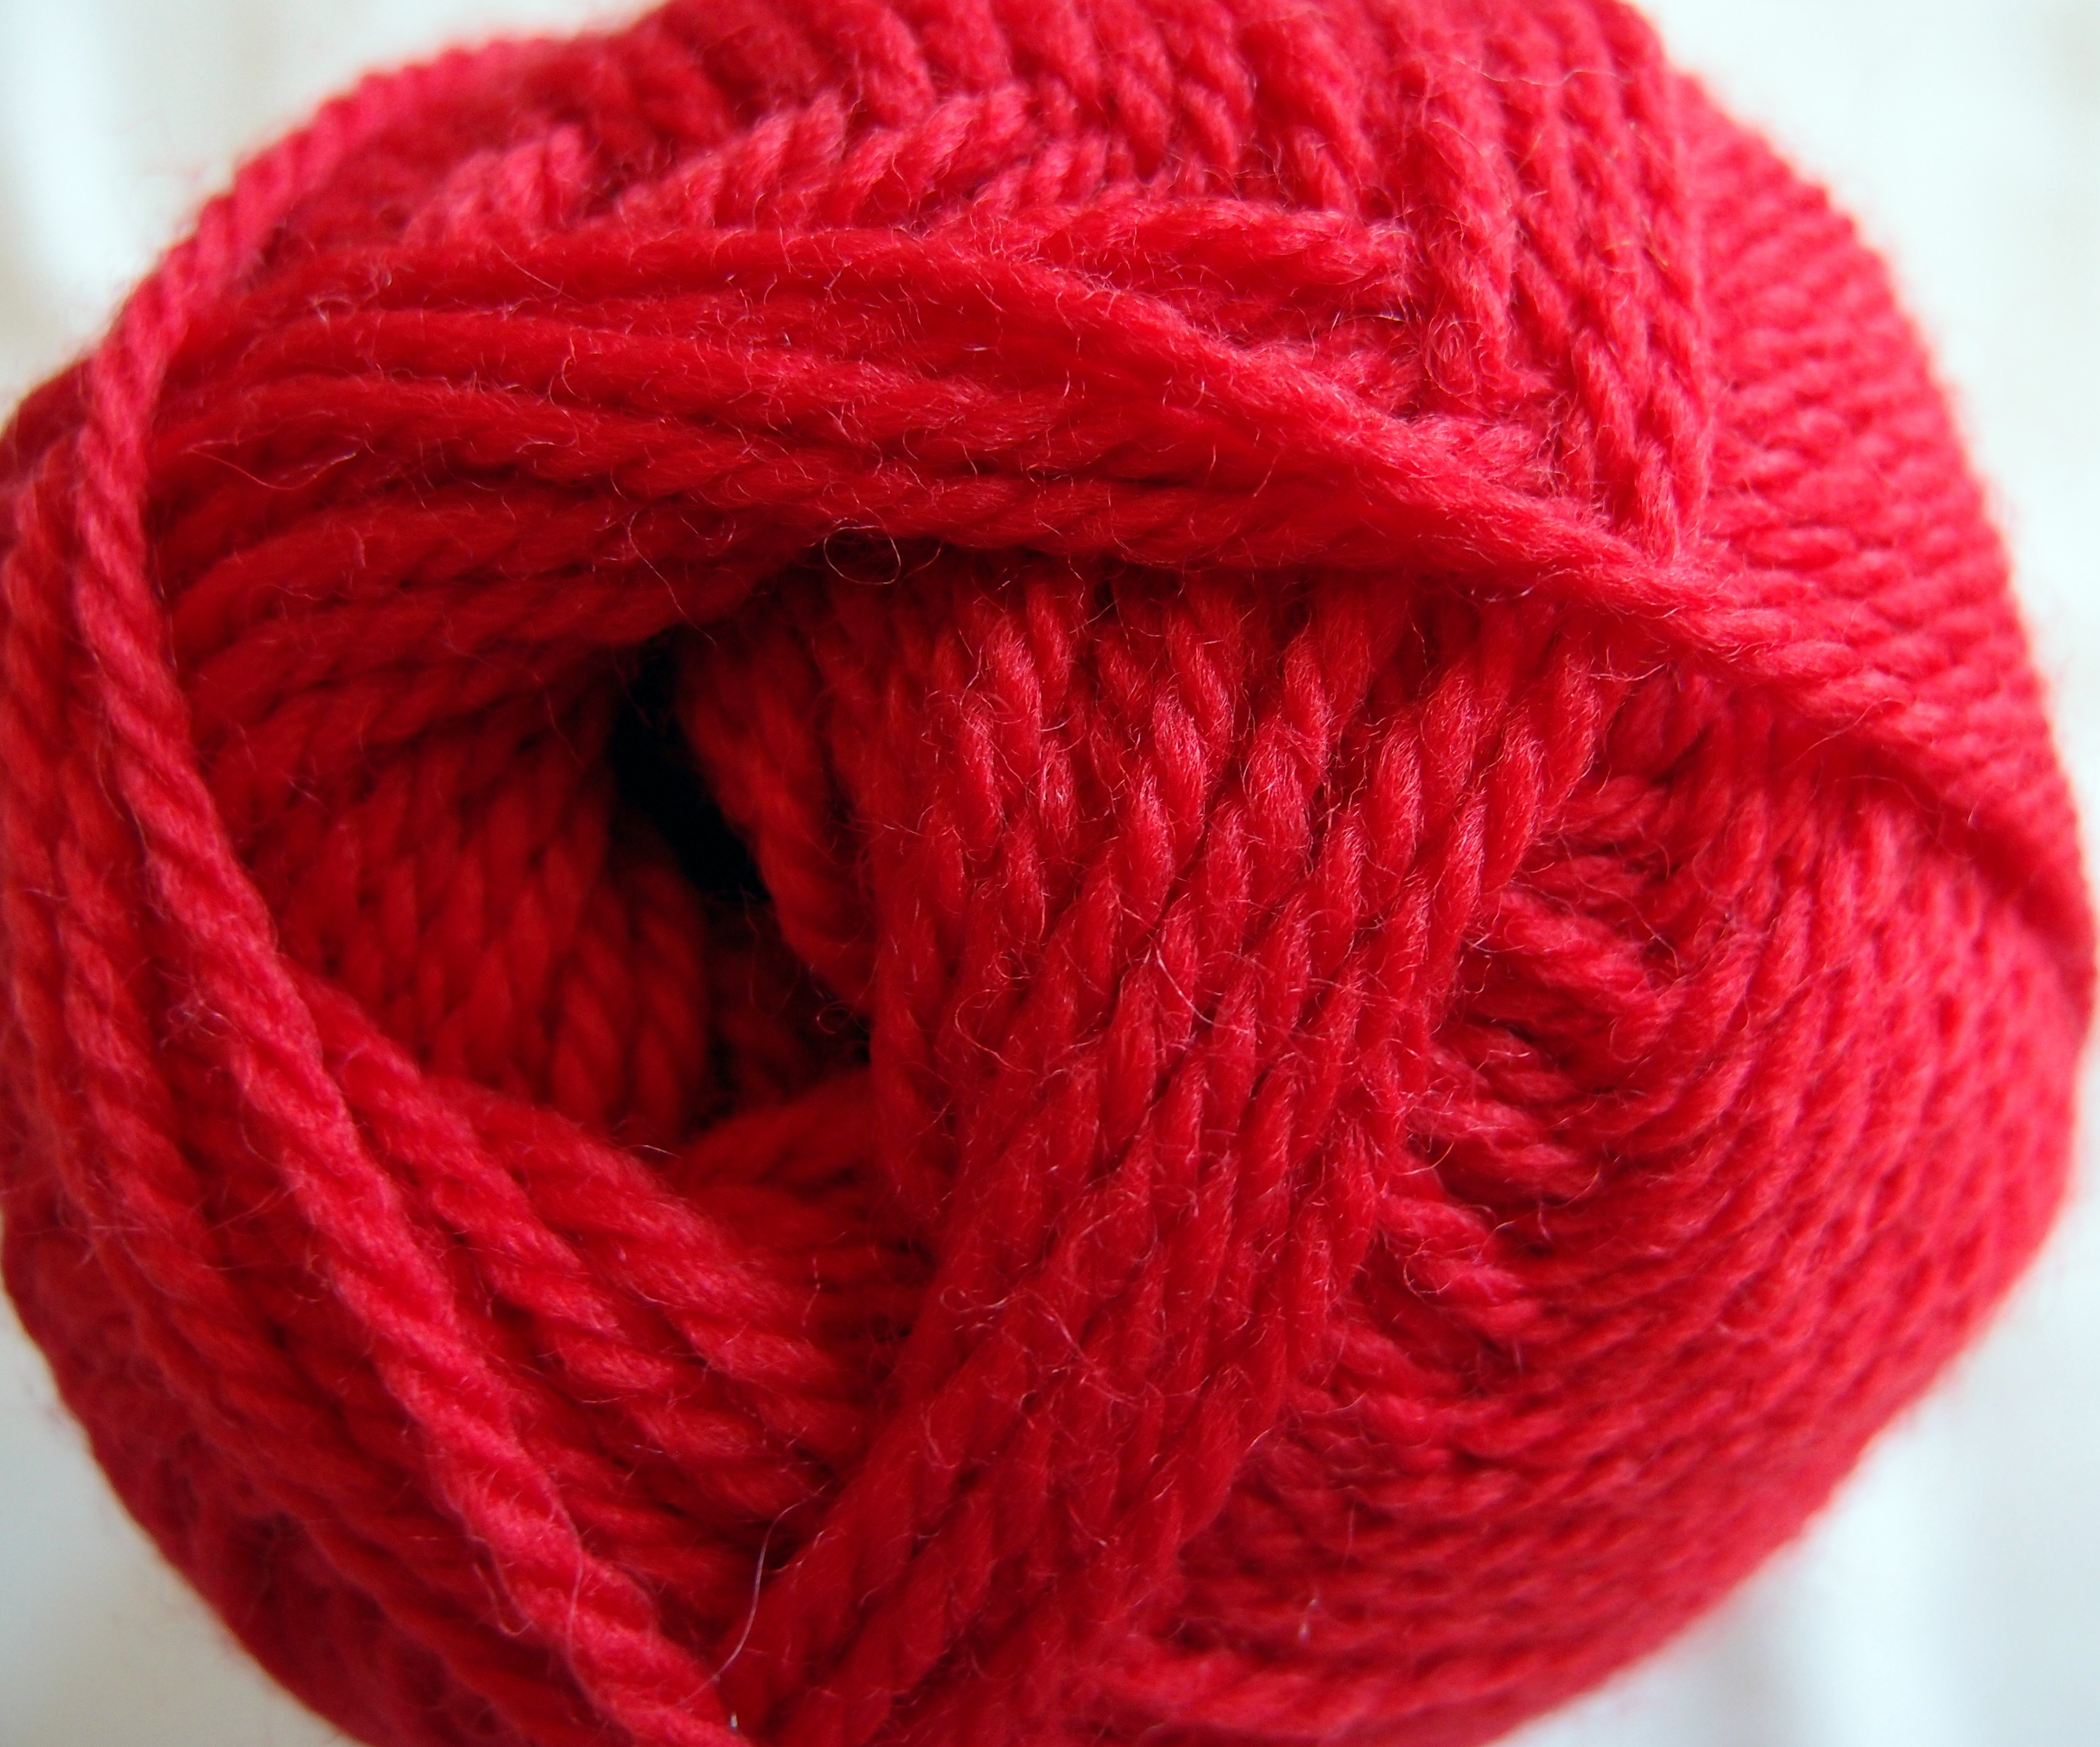 File:Worsted wool yarn.JPG - Wikipedia, the free encyclopedia